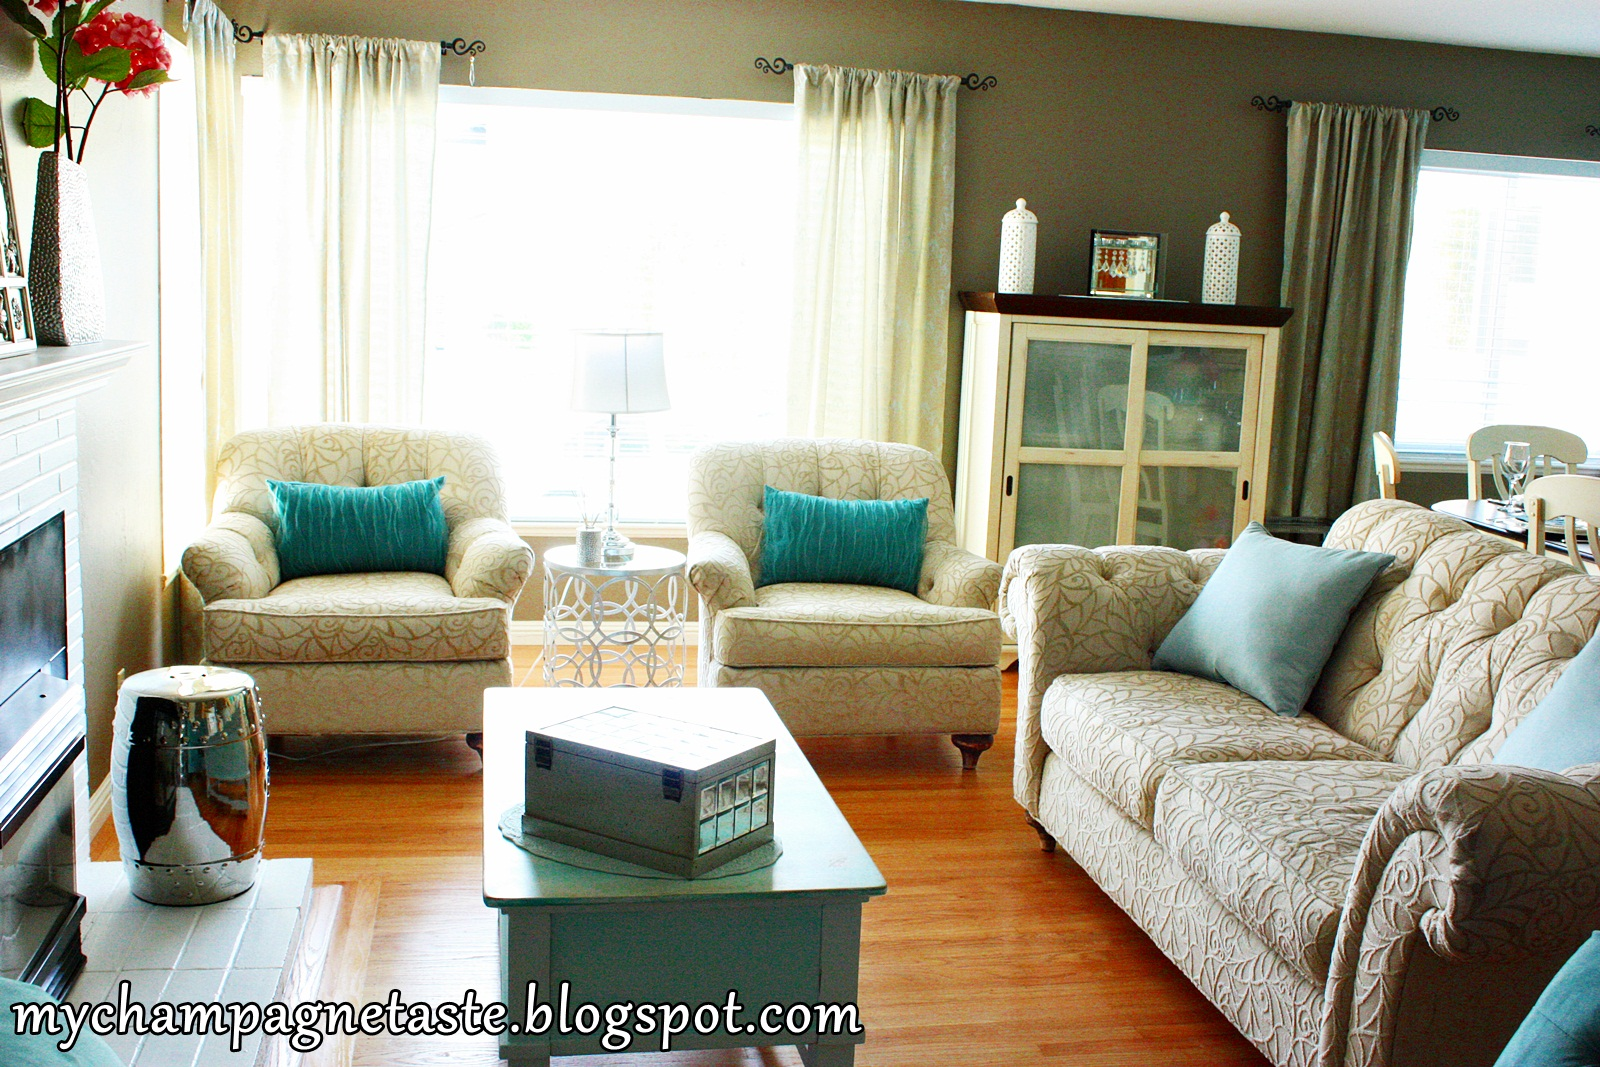 champagne taste turquoise living and dining room